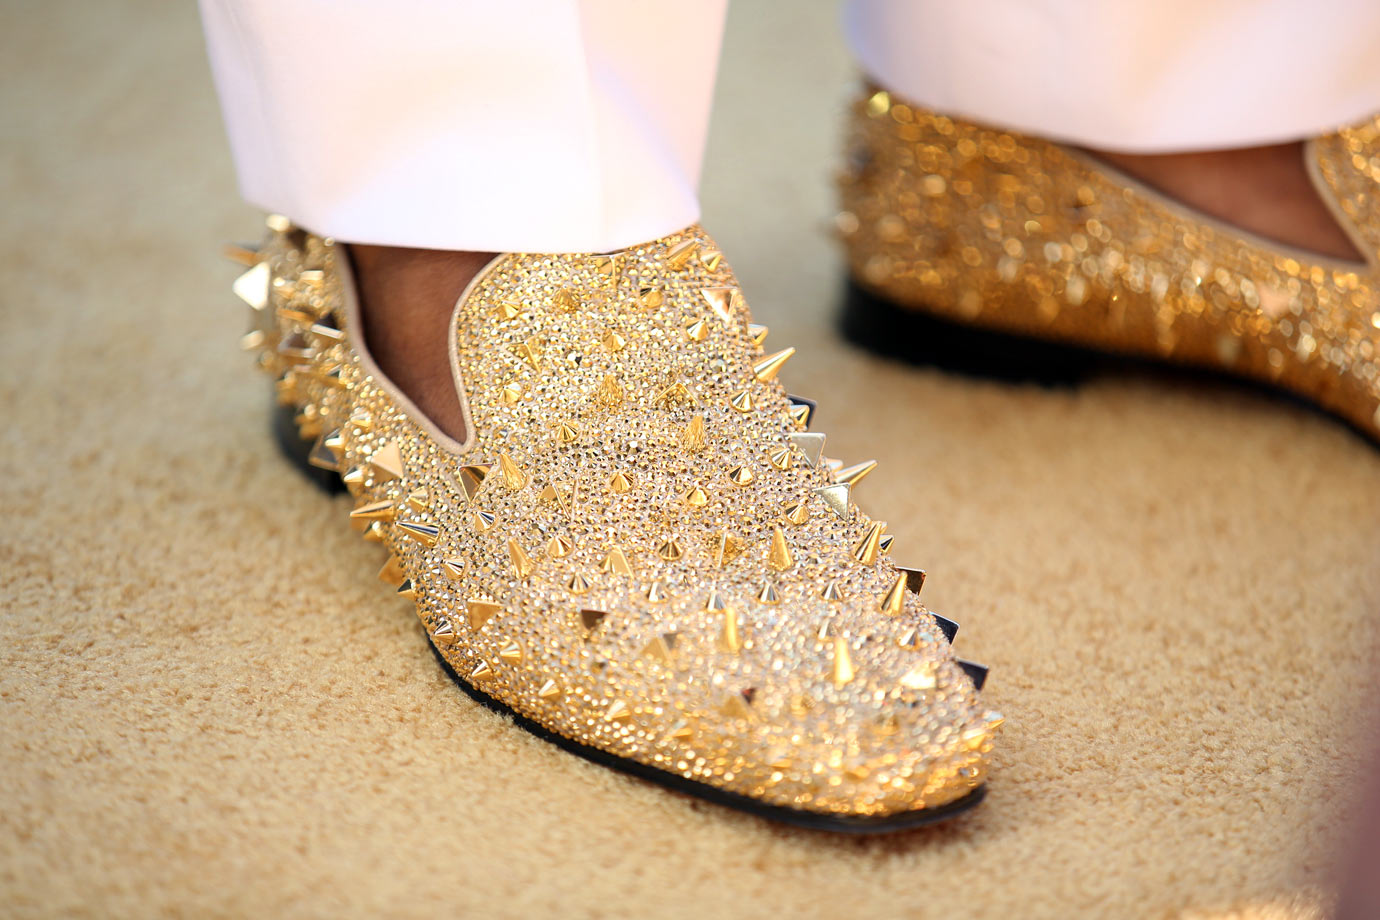 Florida defensive end Dante Fowler stepped into the NFL glittering in gold, wearing a $7,000 pair of Christian Louboutin loafers on draft day. Fowler was taken by the Jaguars with the third pick.